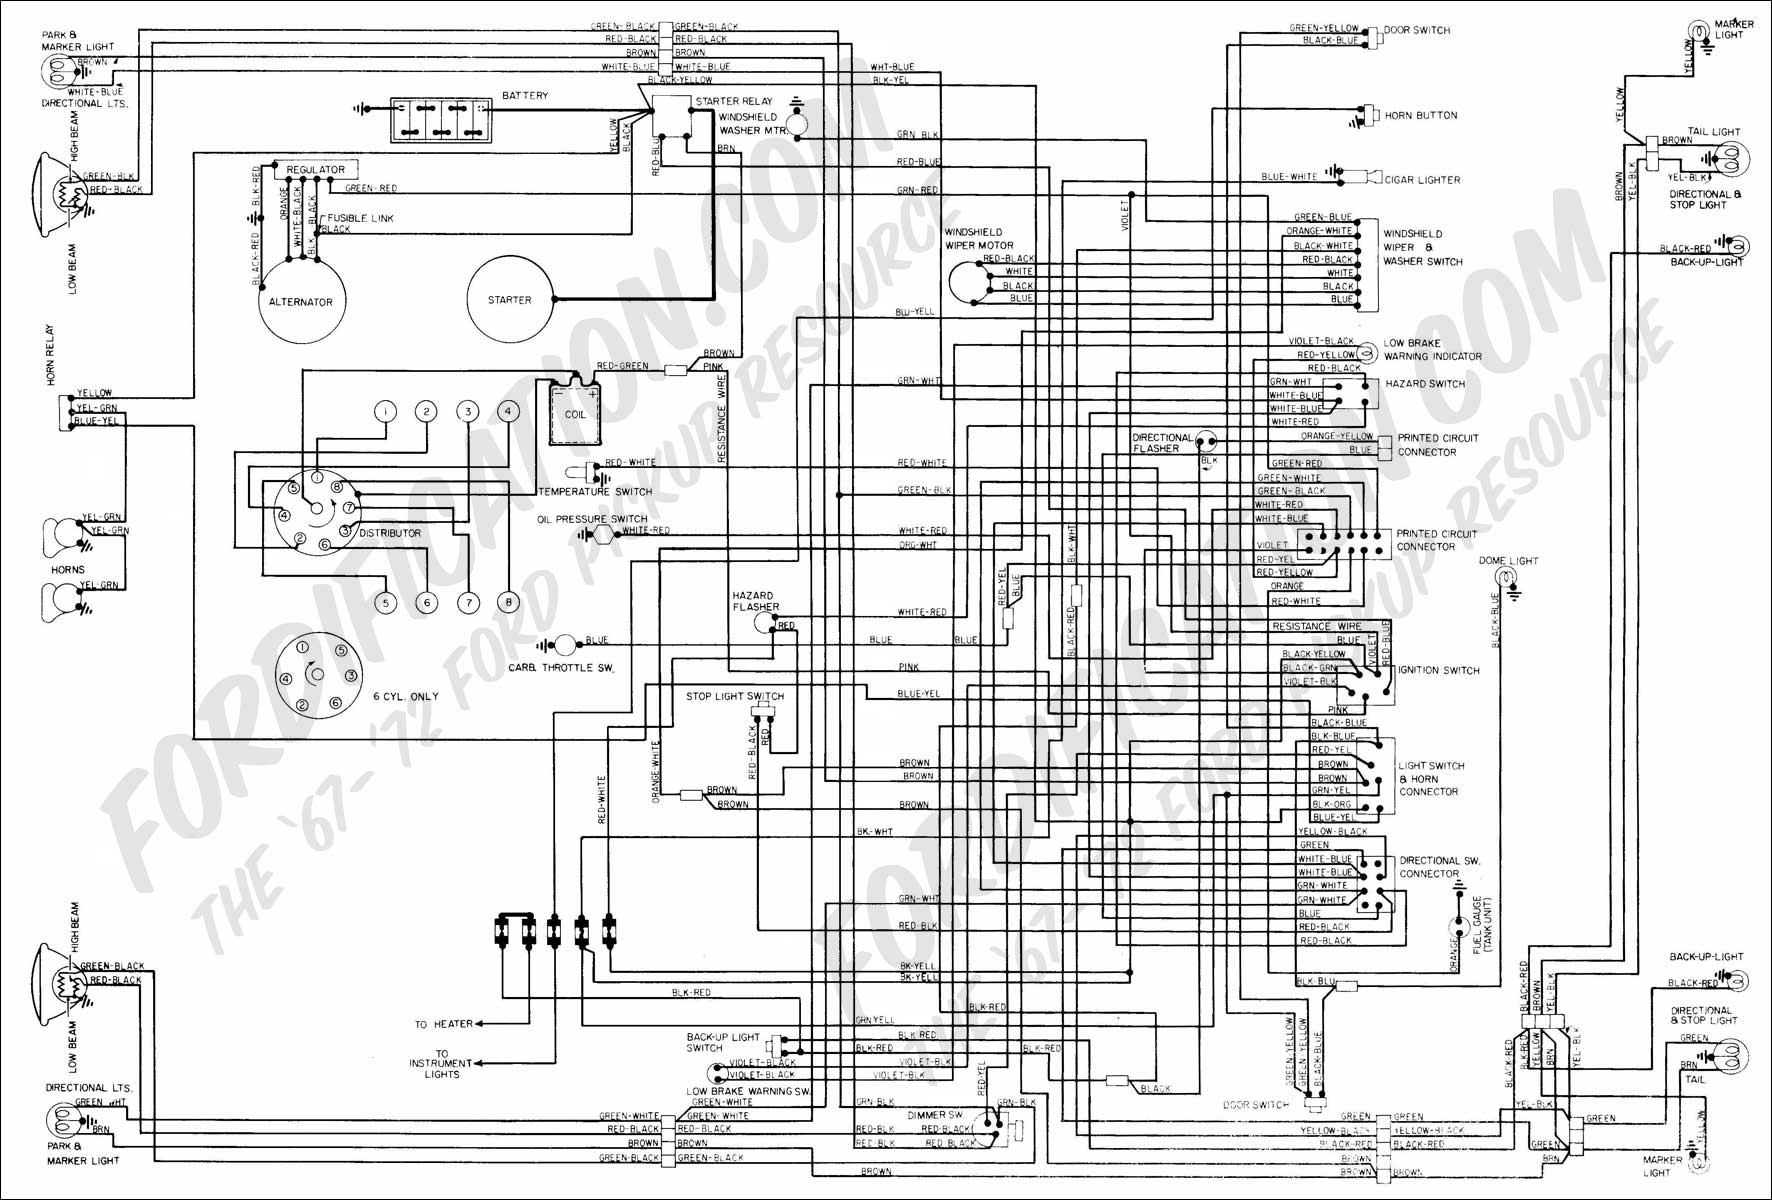 Ford F650 Wiring - Wiring Schematics F Wiring Diagram Stereo on